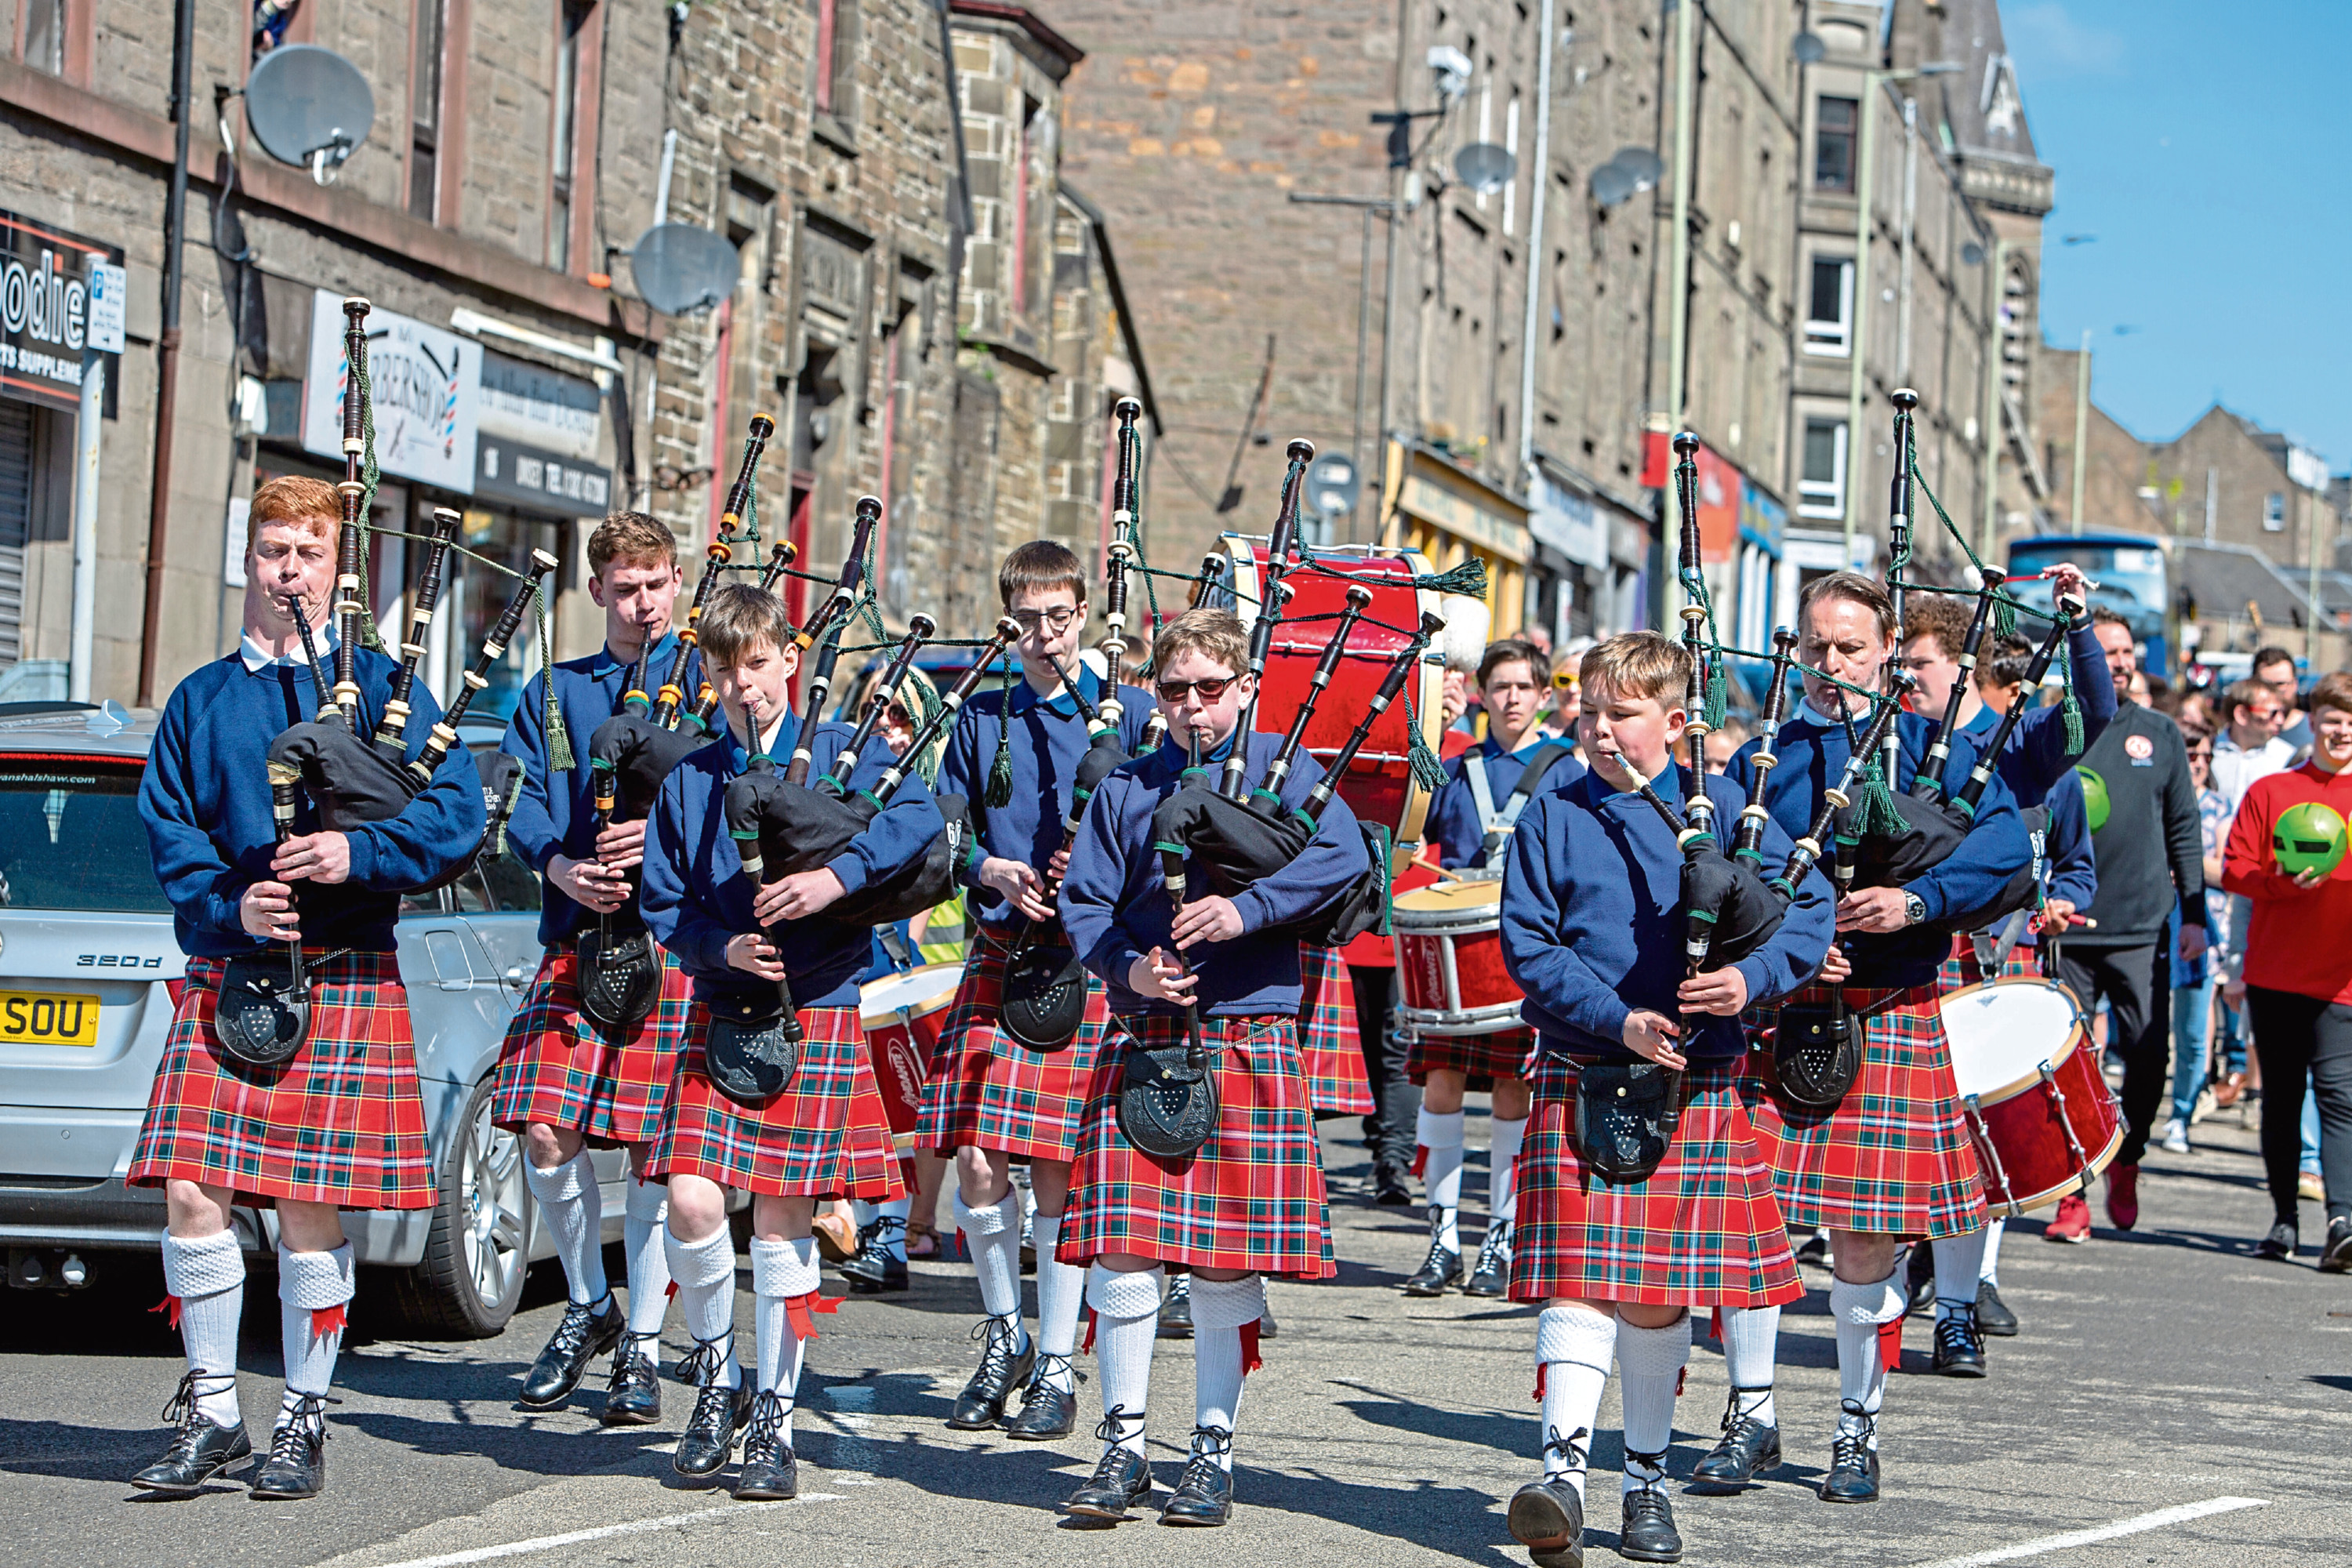 The parade on Albert Street during last year's Stobfest.